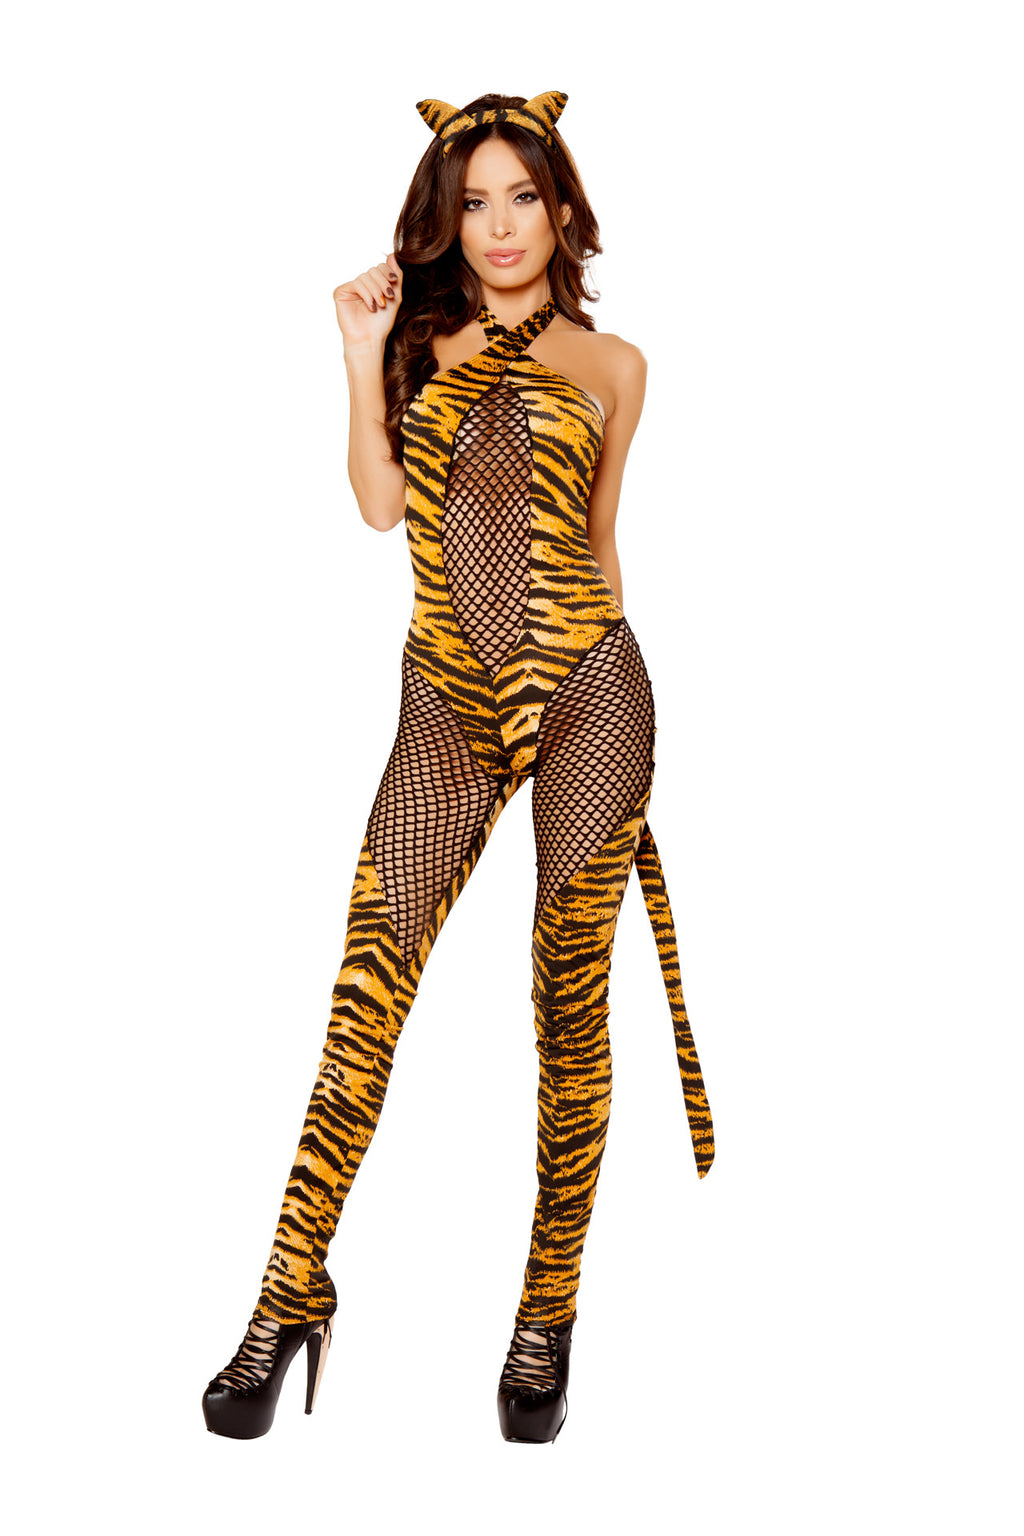 3-PC-Tiger-Cat-Fishnet-Jumpsuit-Catsuit-w/-Tail-&-Ears-Party-Costume